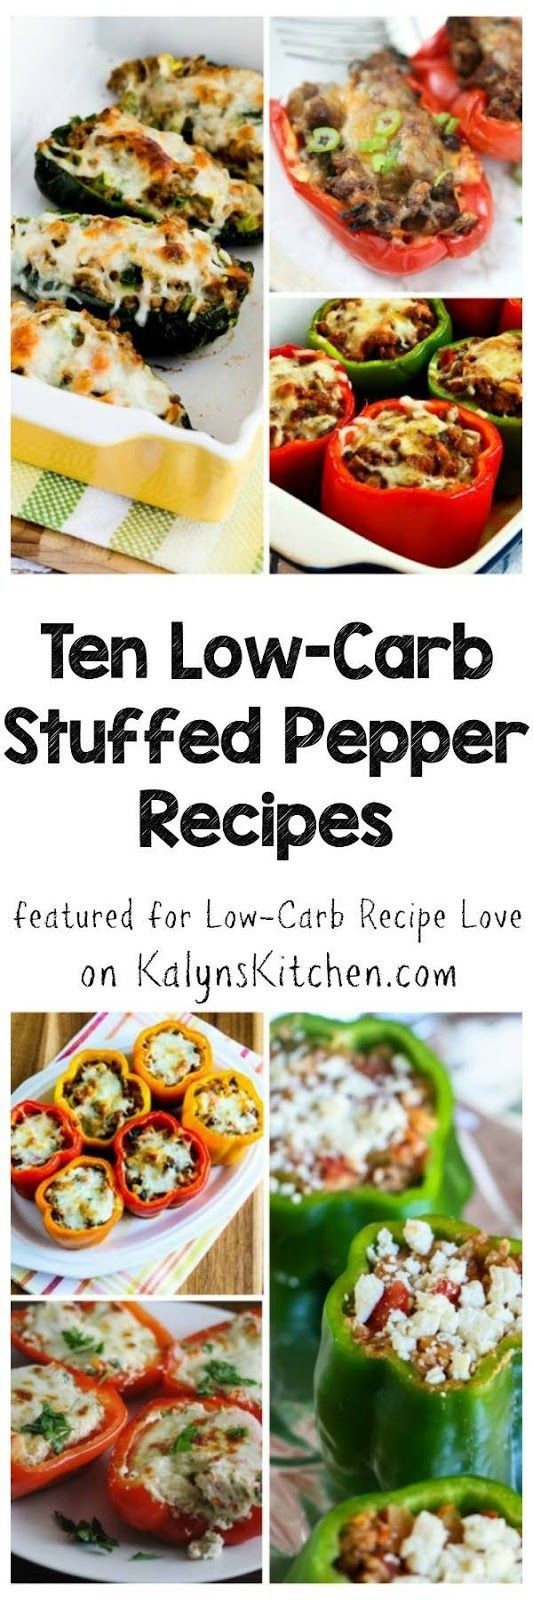 Ten Low Carb Stuffed Peppers Recipes Low Carb Stuffed